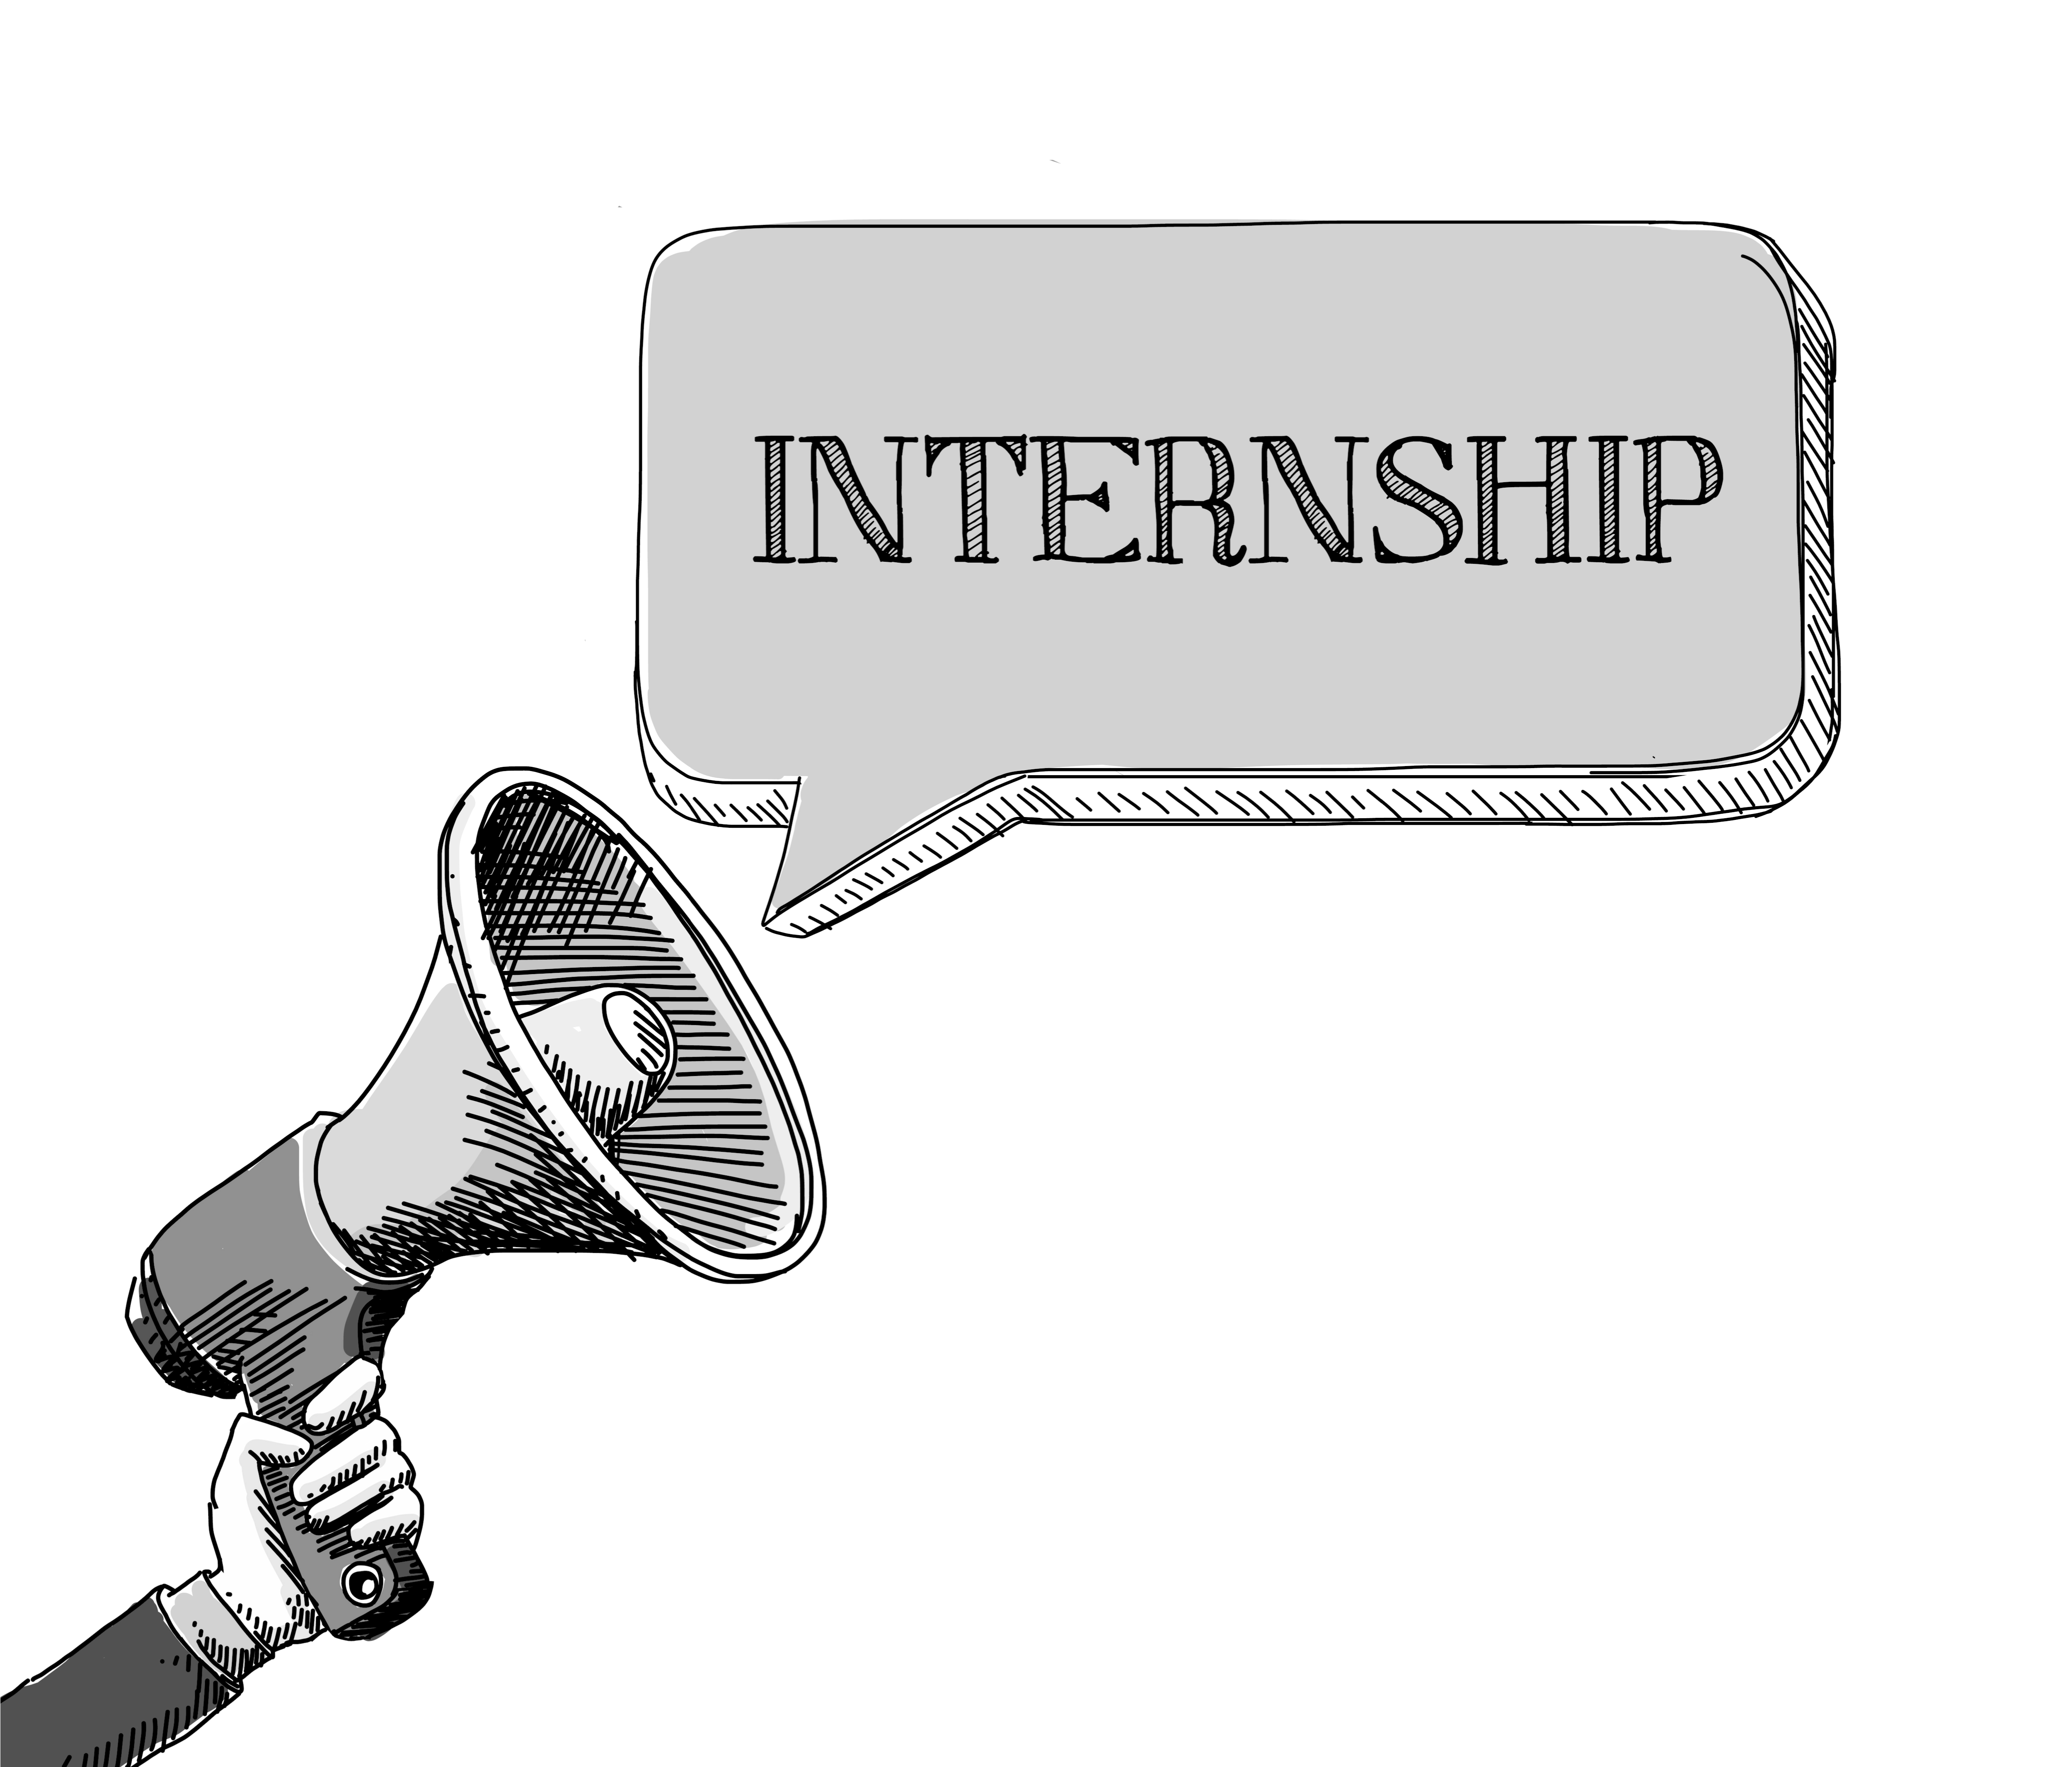 2021 Internship Applications are now open!